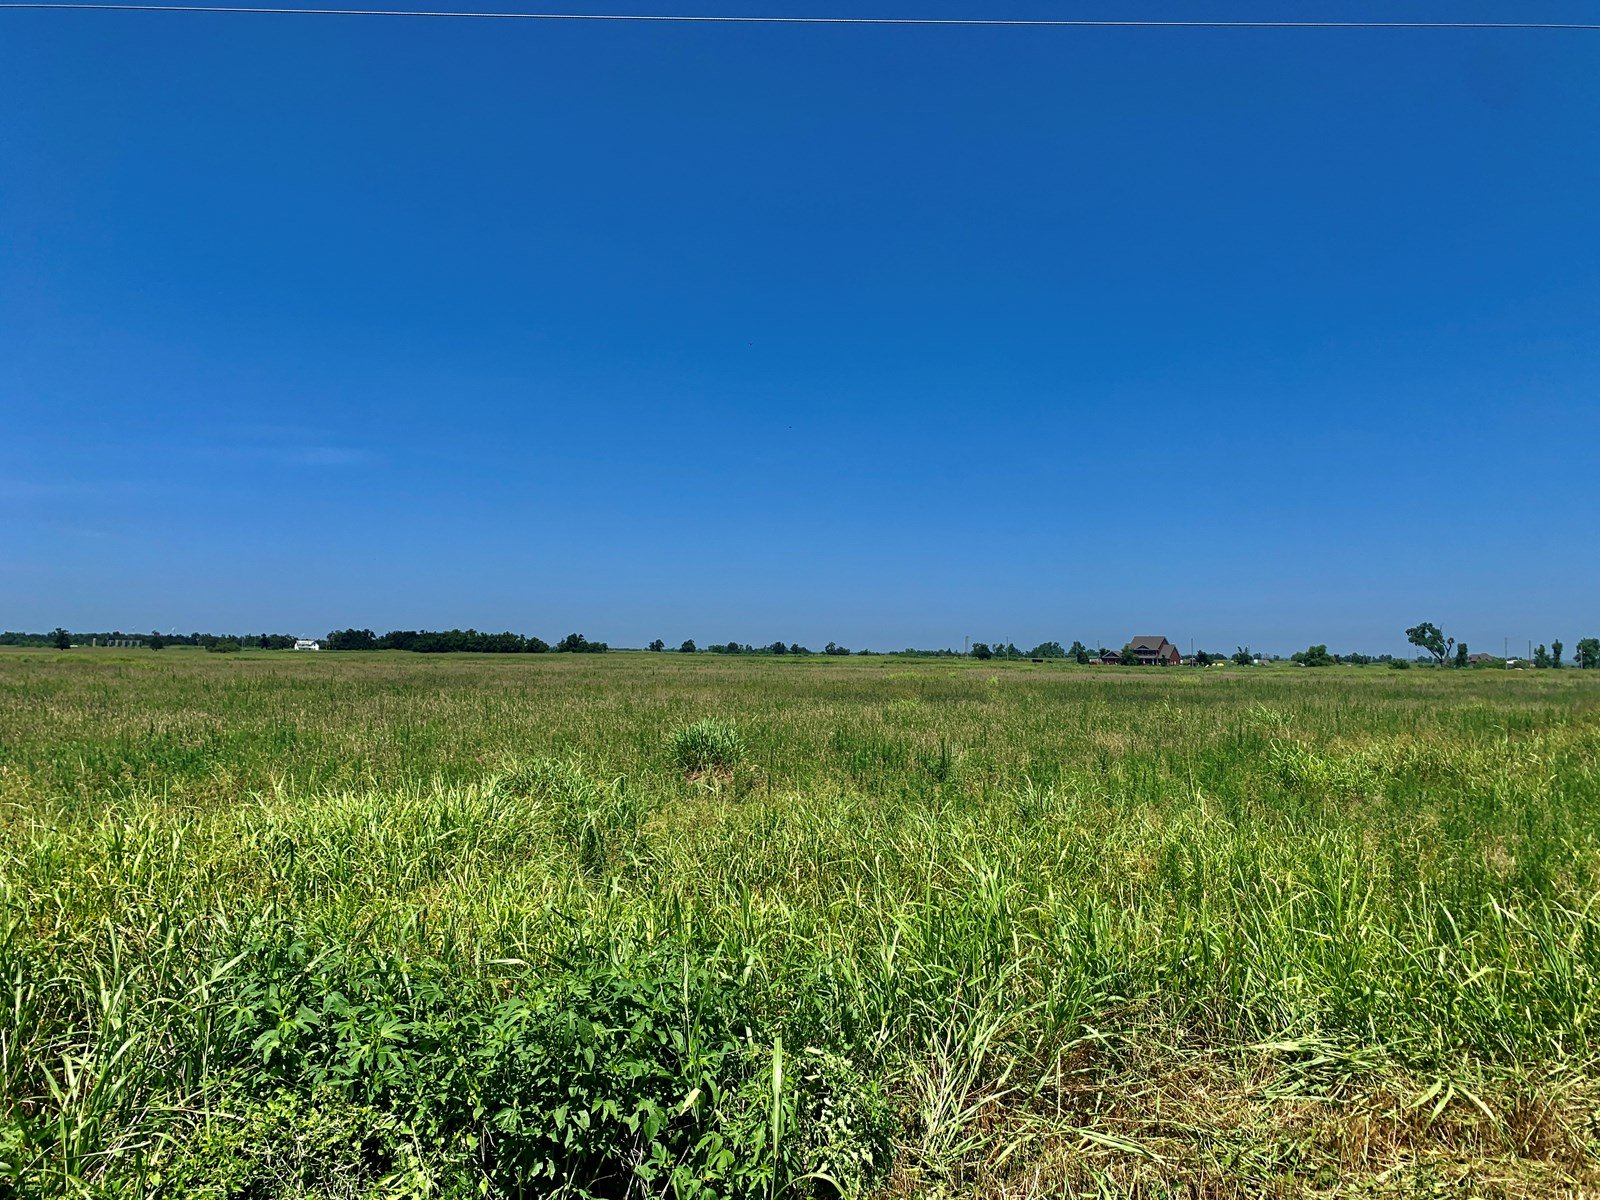 30 Acres - On the Highway - Crescent, OK - Develop or Build!